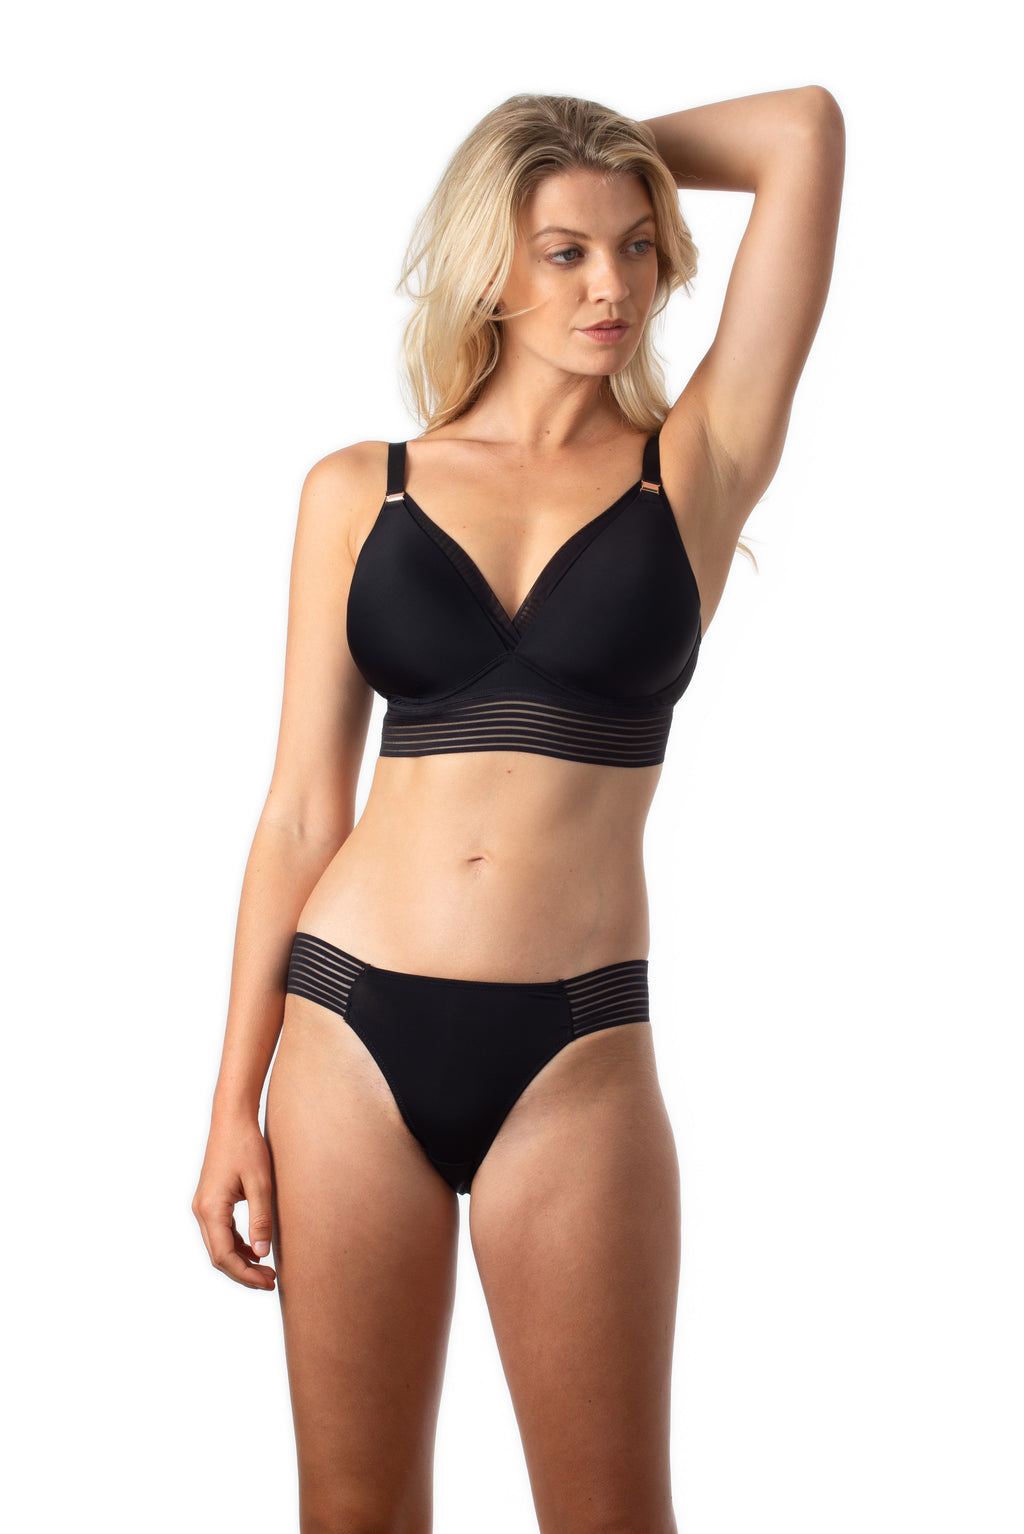 AMBITION TRIANGLE CONTOUR BLACK NURSING BRA - WIREFREE